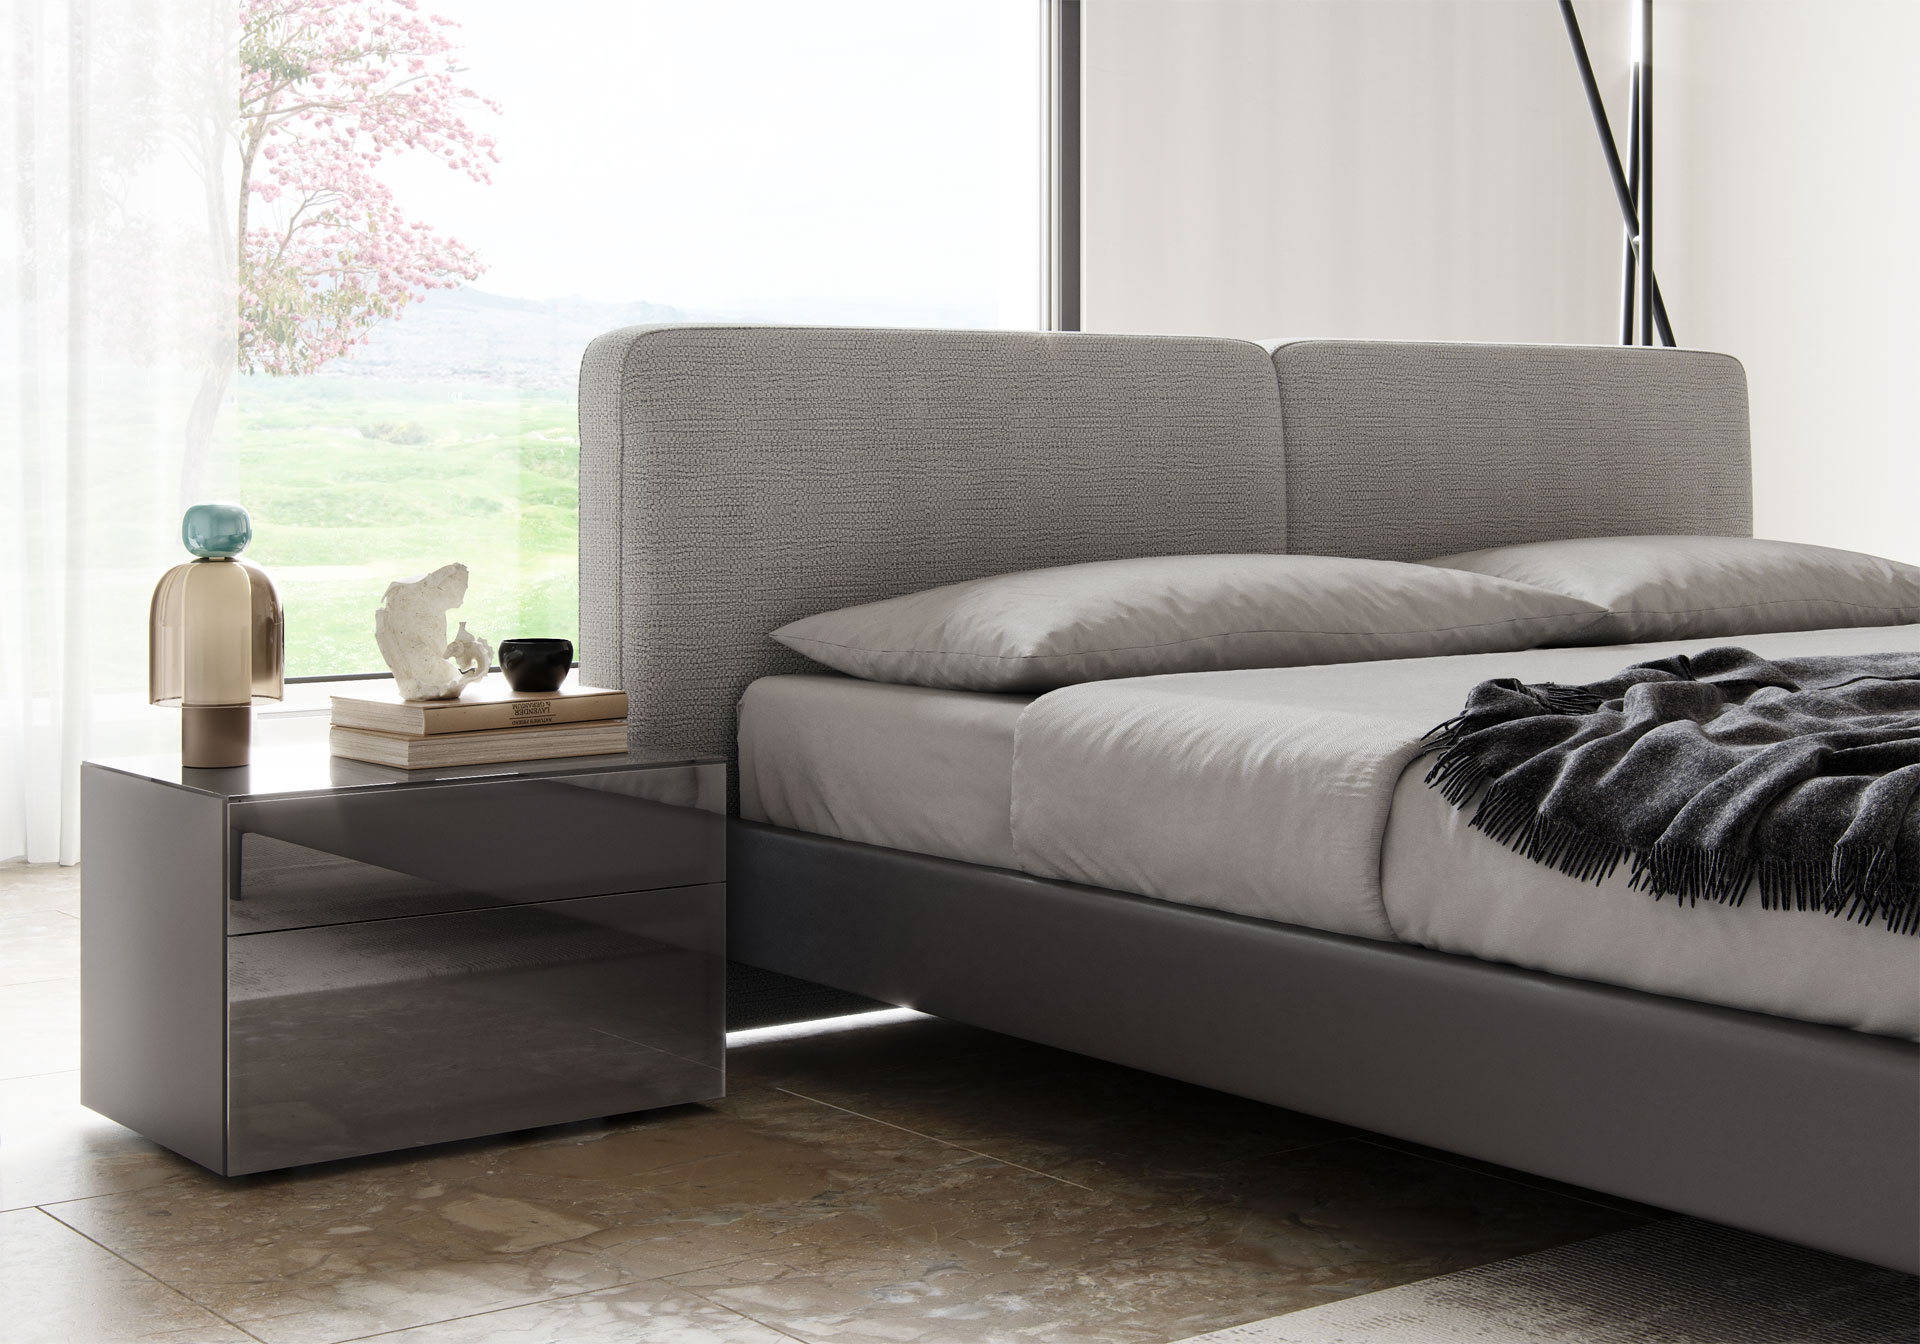 Modloft Bethune Bed